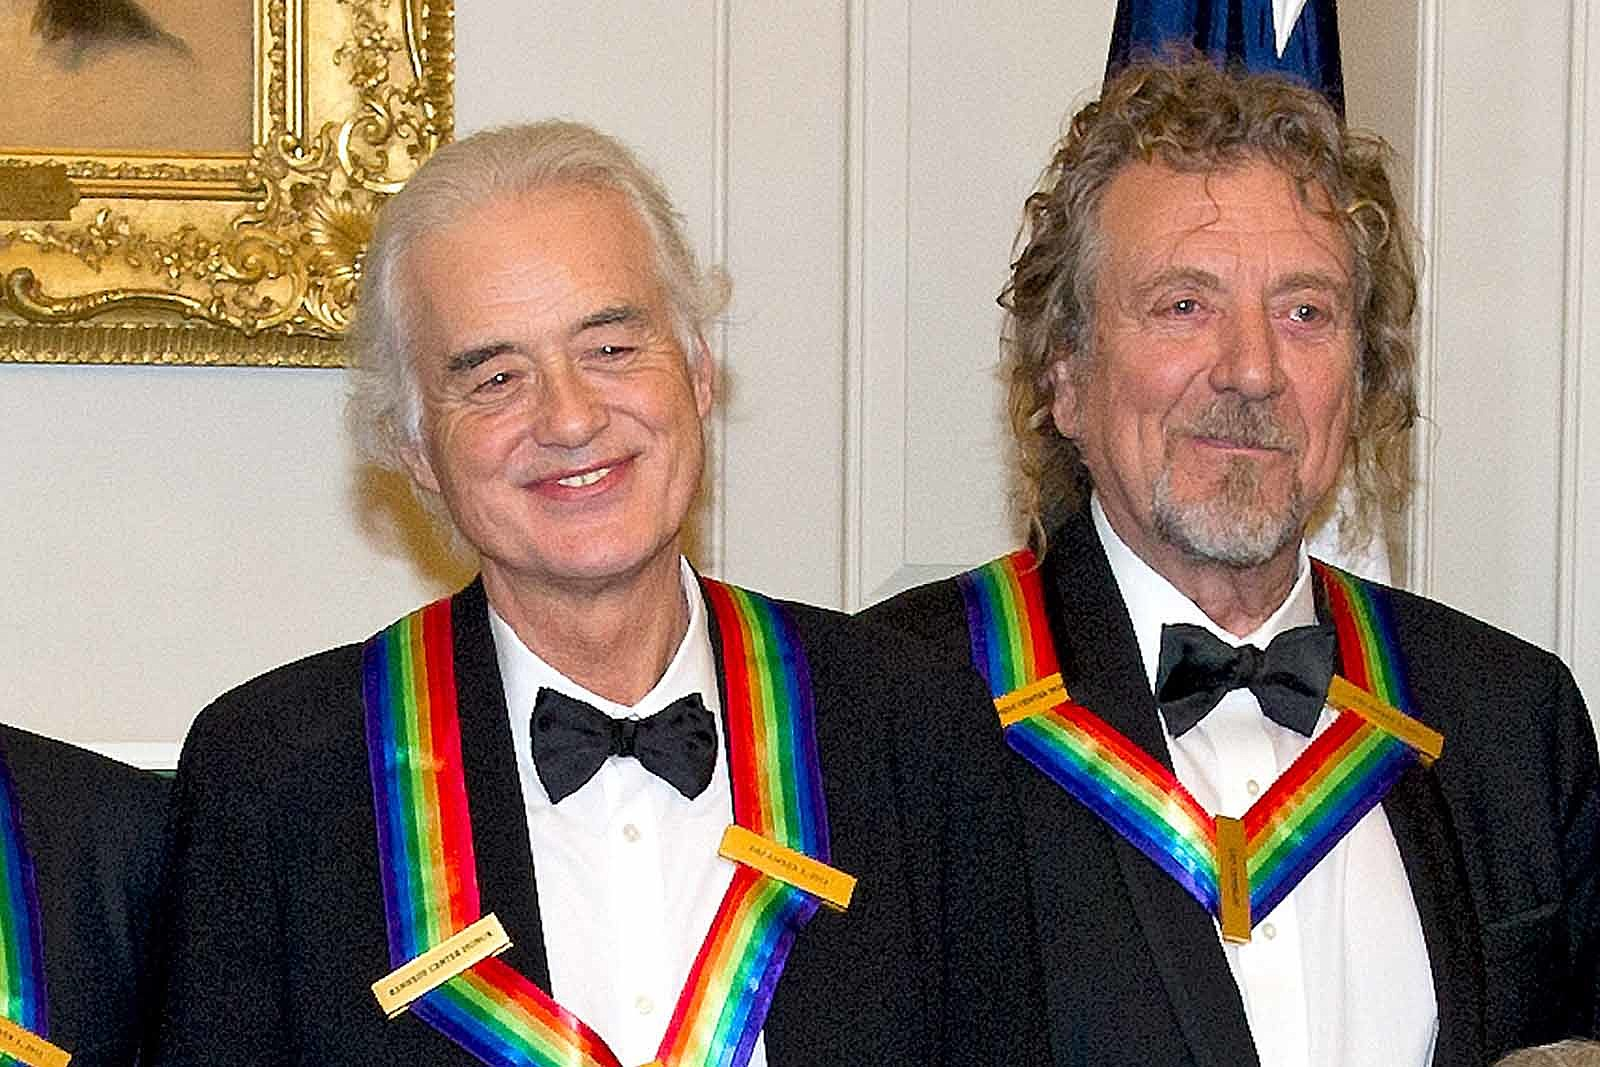 Jimmy Page Slams Robert Plant's 'Cabaret' Comments